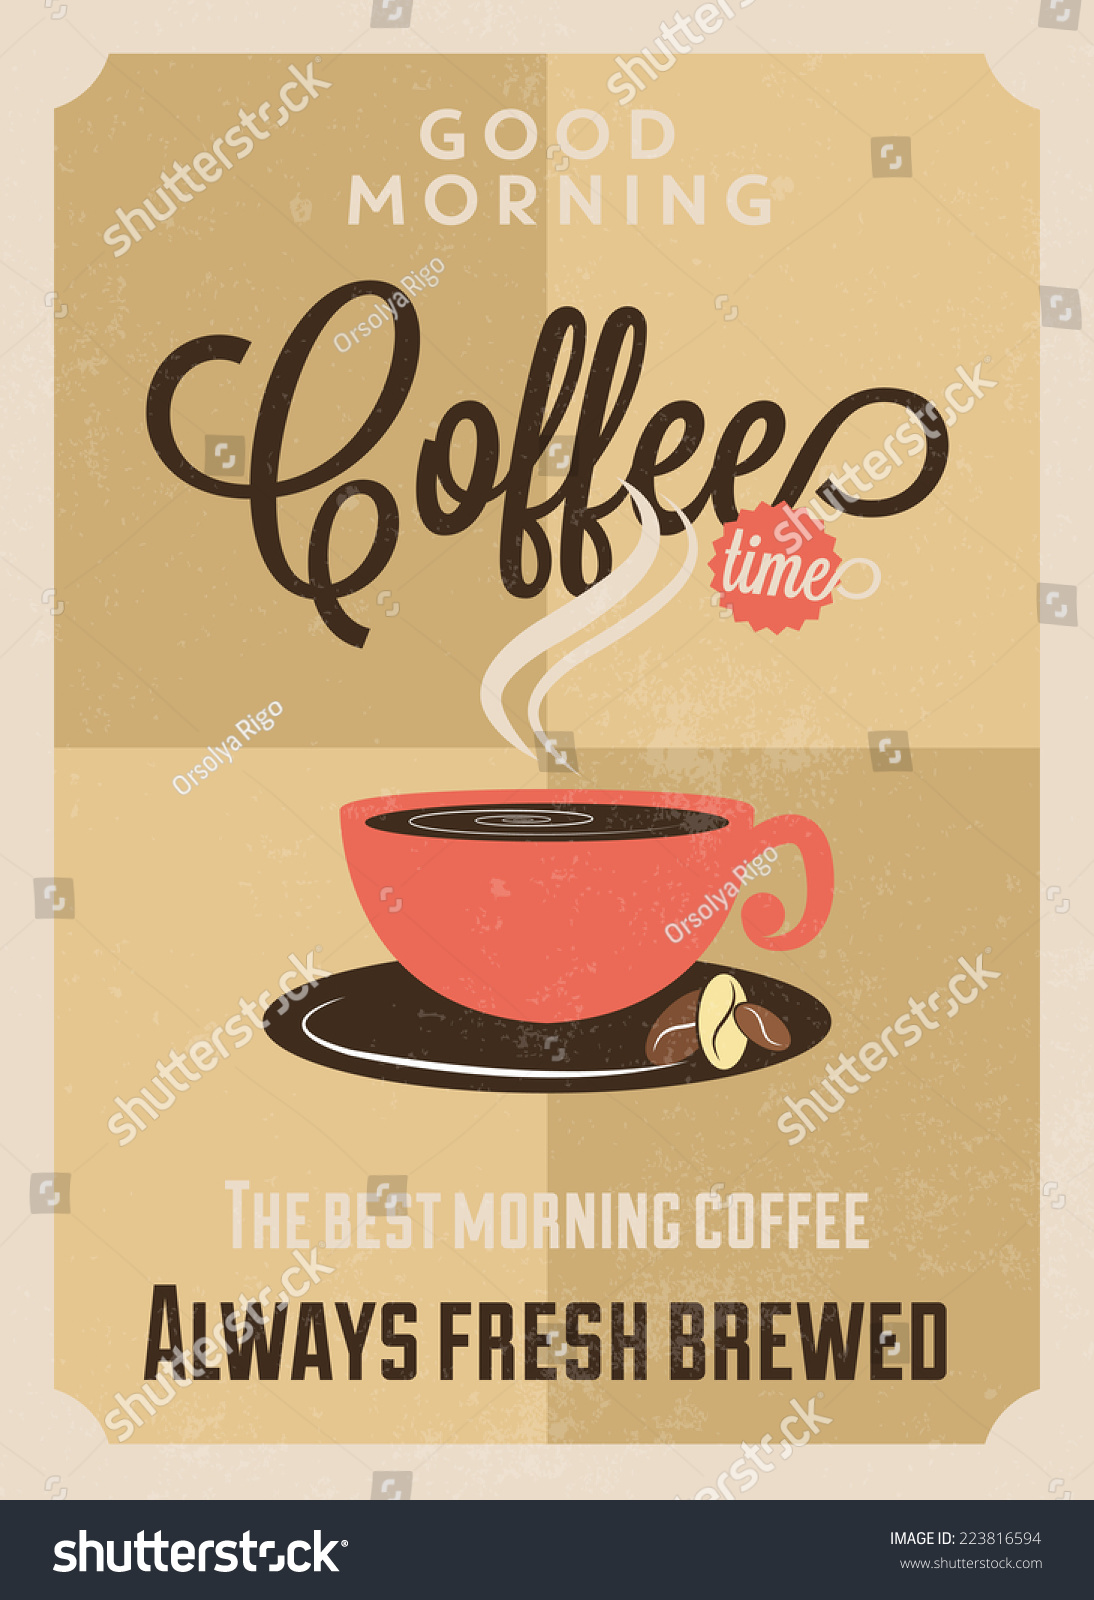 Coffee Posters Retro ~ Coffee vintage poster flat design style stock vector